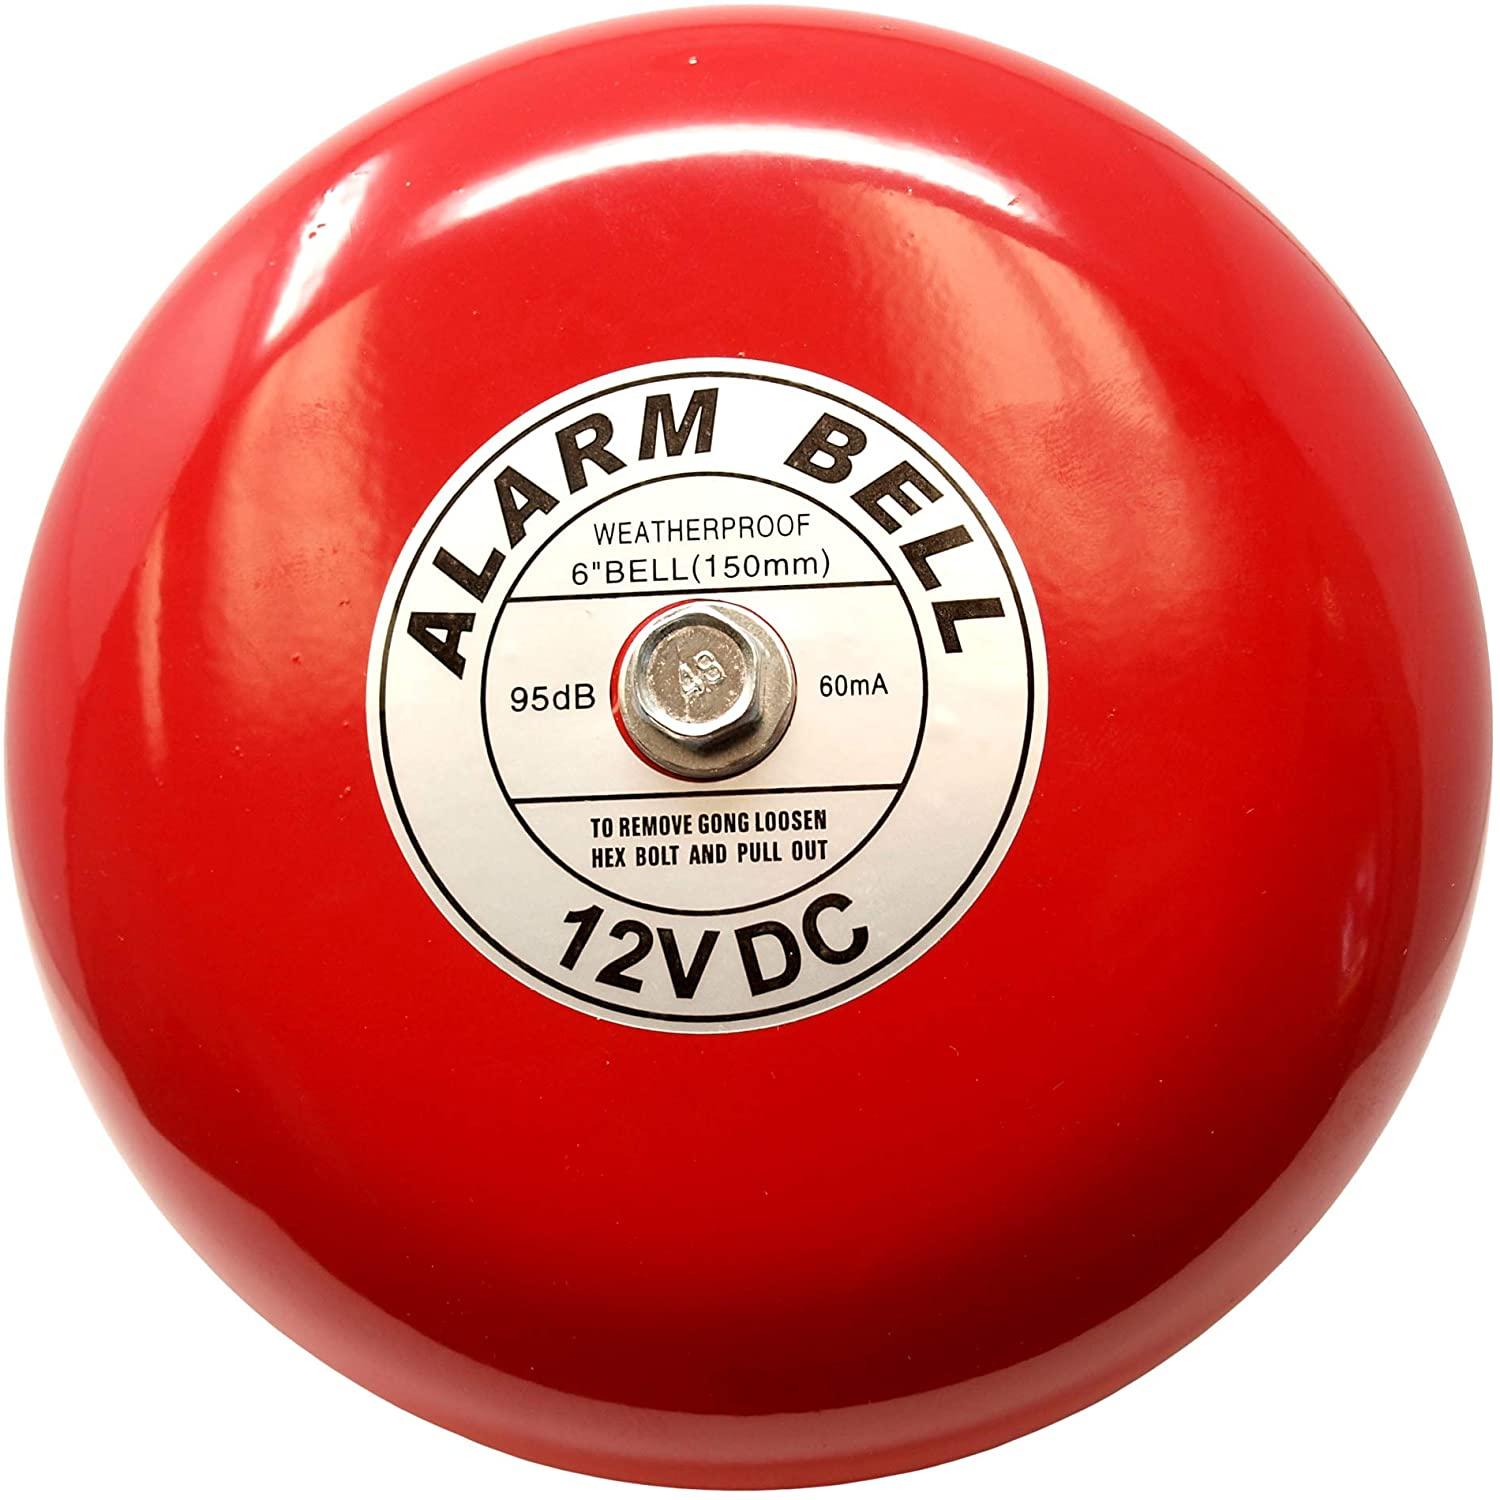 A Fire Alarm Bell System